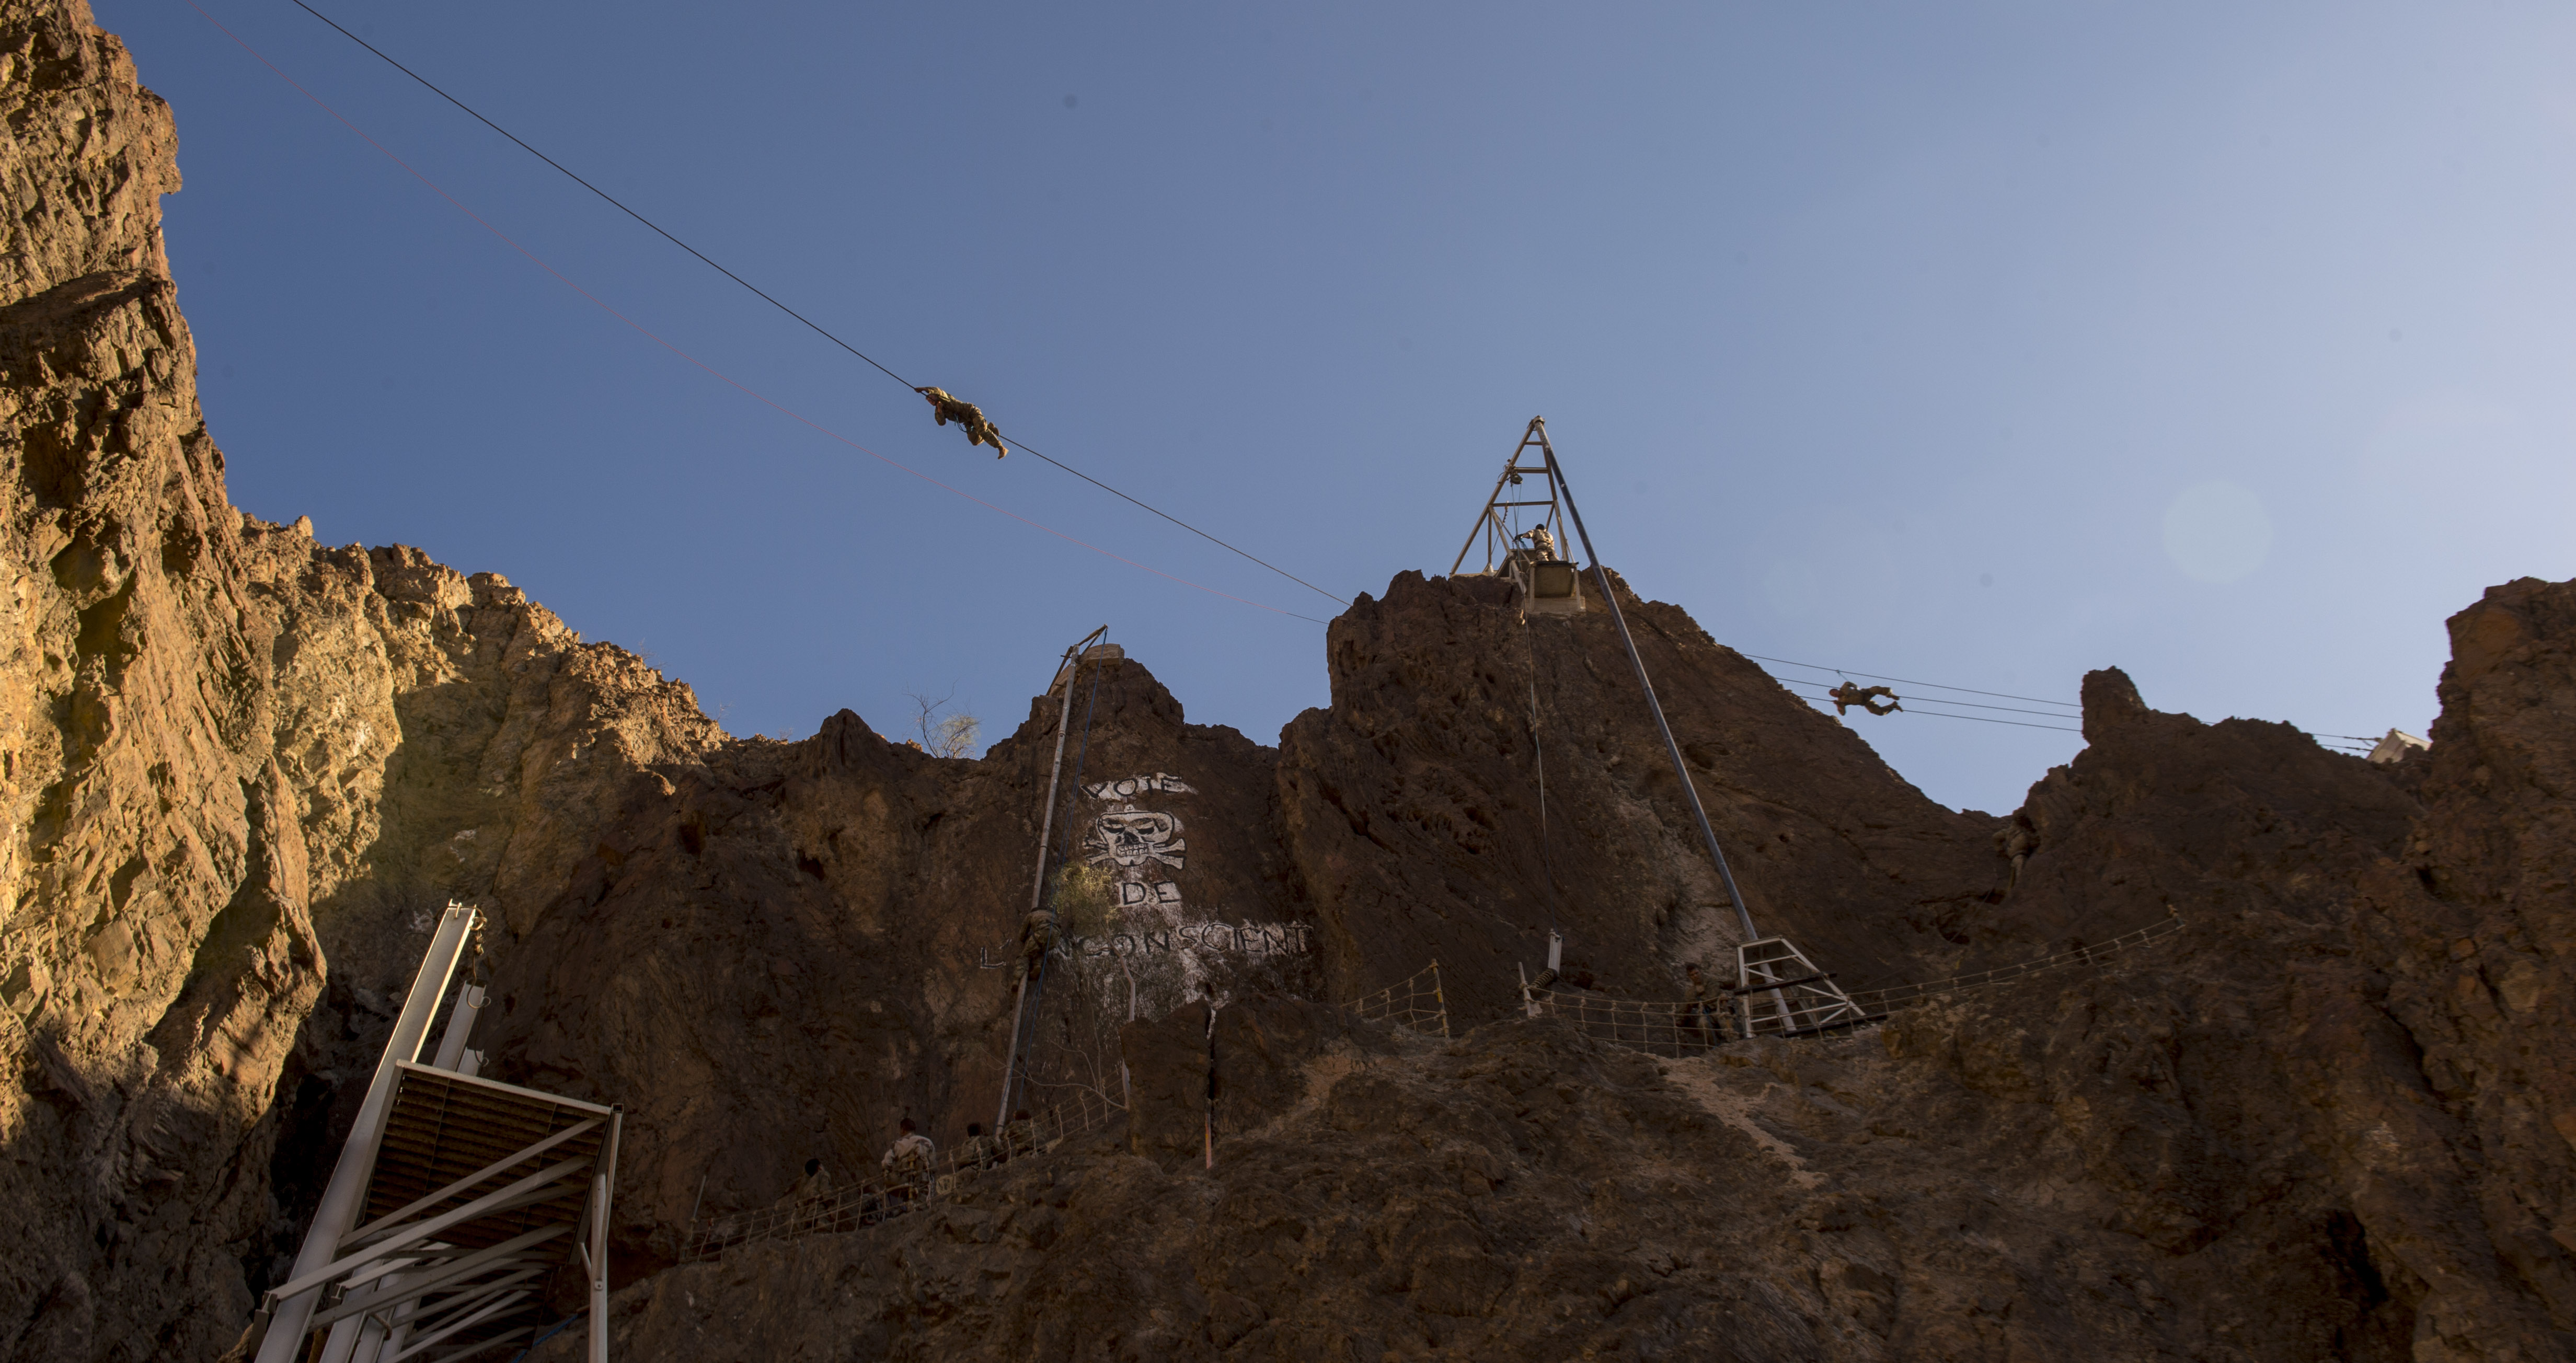 U.S. service members assigned to the Combined Joint Task Force - Horn of Africa, navigate various mountain obstacles during the French Desert Commando Course held at Arta, Djibouti, Dec. 3, 2017. Thirty U.S. service members participated in the obstacle course alongside French marines assigned to the 5th Overseas Interarms Regiment, Djibouti. (U.S. Air Force photo by Staff Sgt. Timothy Moore)